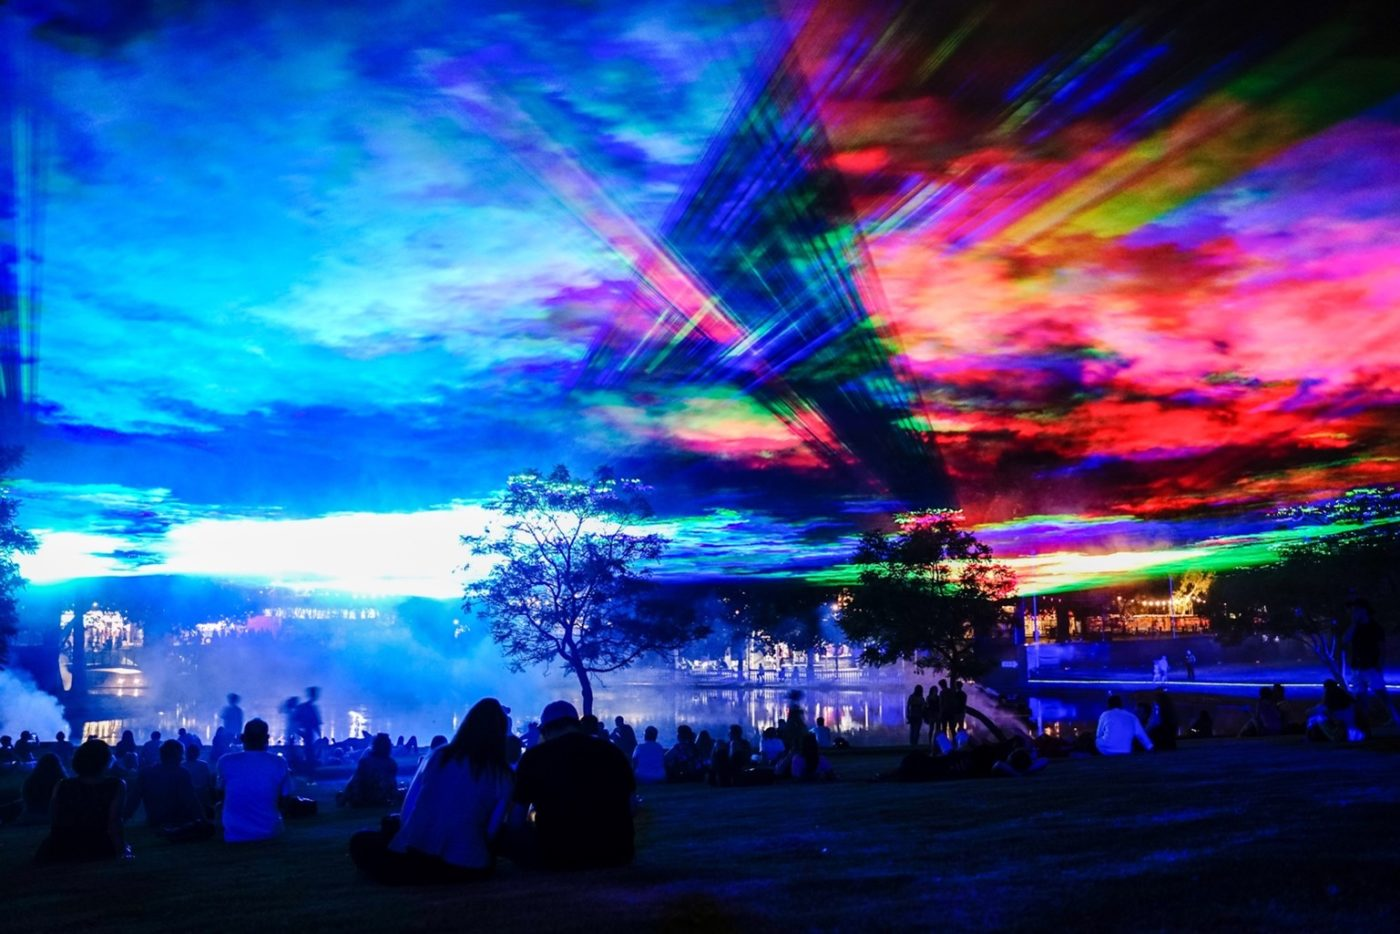 From Greenwich + Docklands International Festival, the aurora borealis is recreated with multi-coloured lights over a night sky in a city park. Couples and groups watch from below.